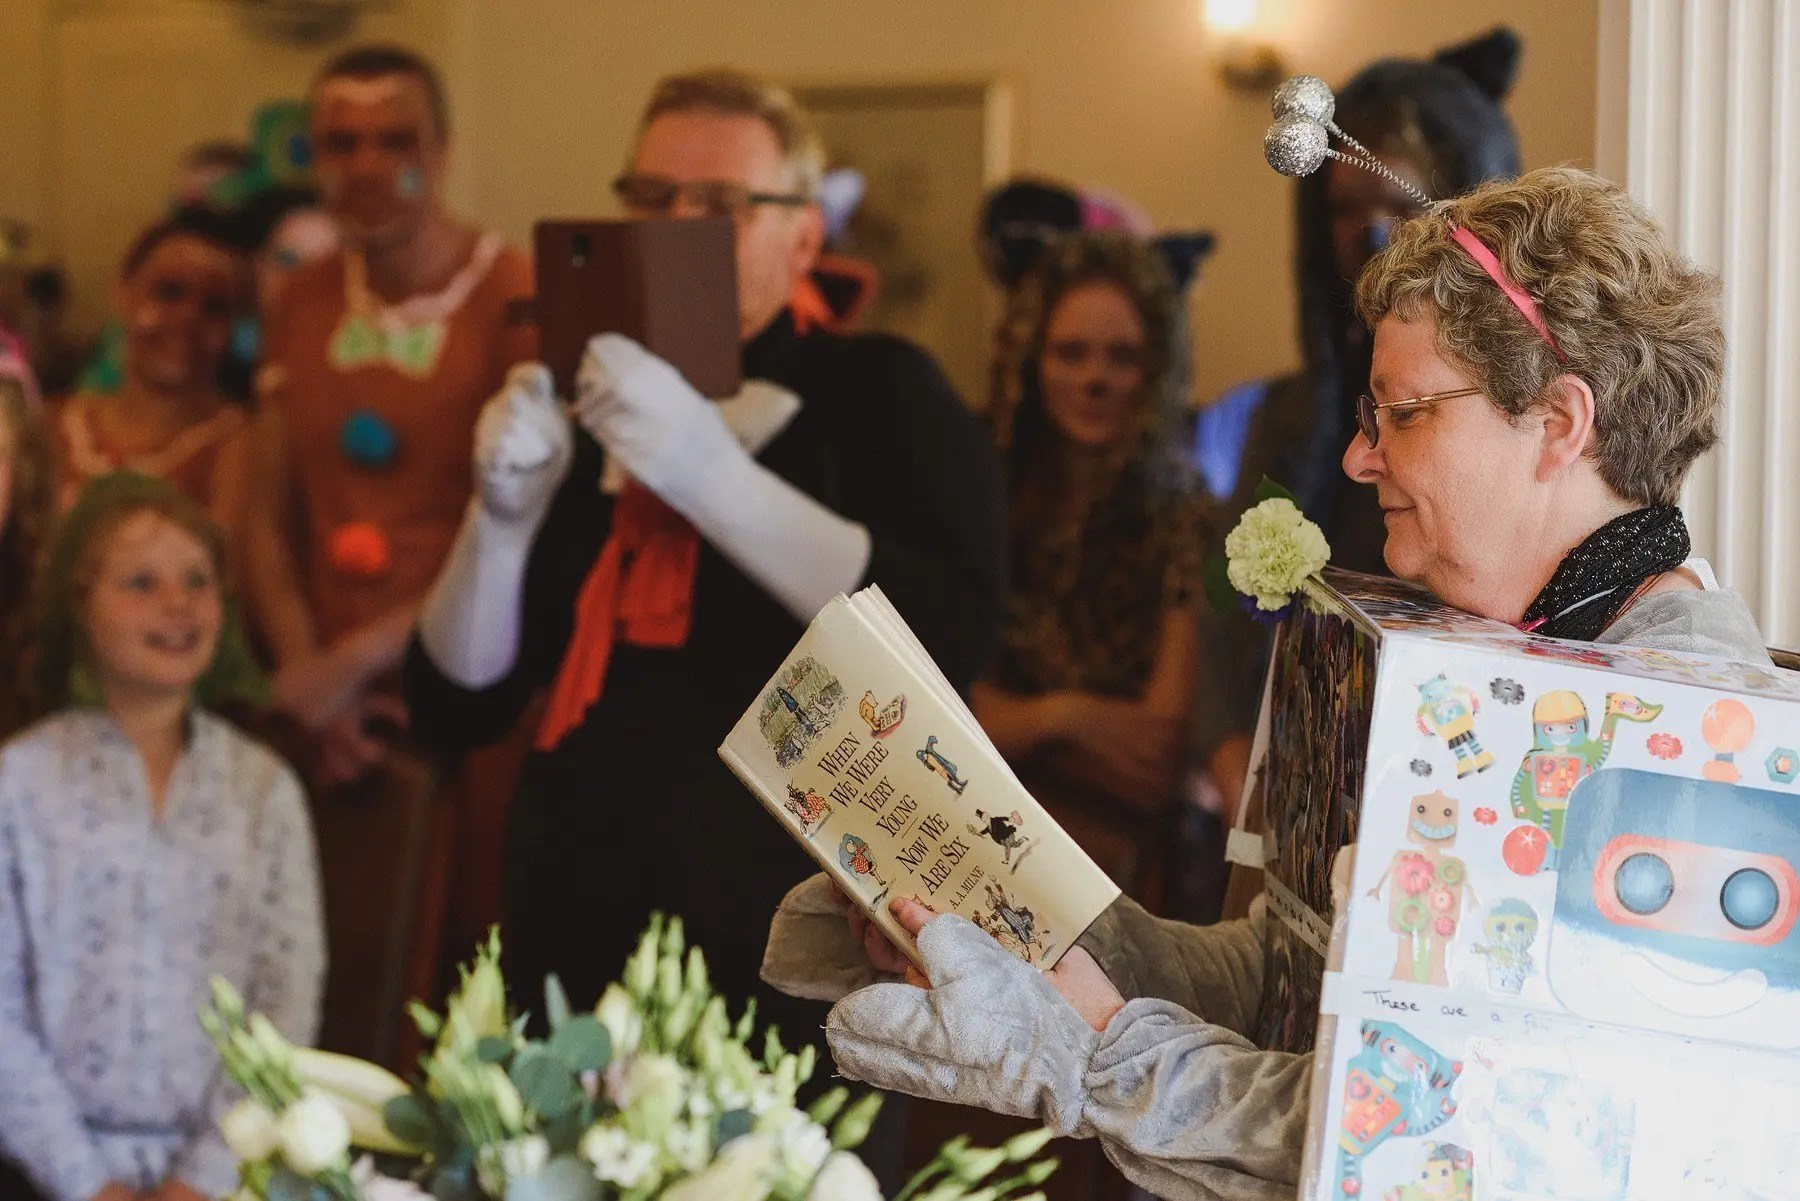 winnie the pooh reading at a wedding